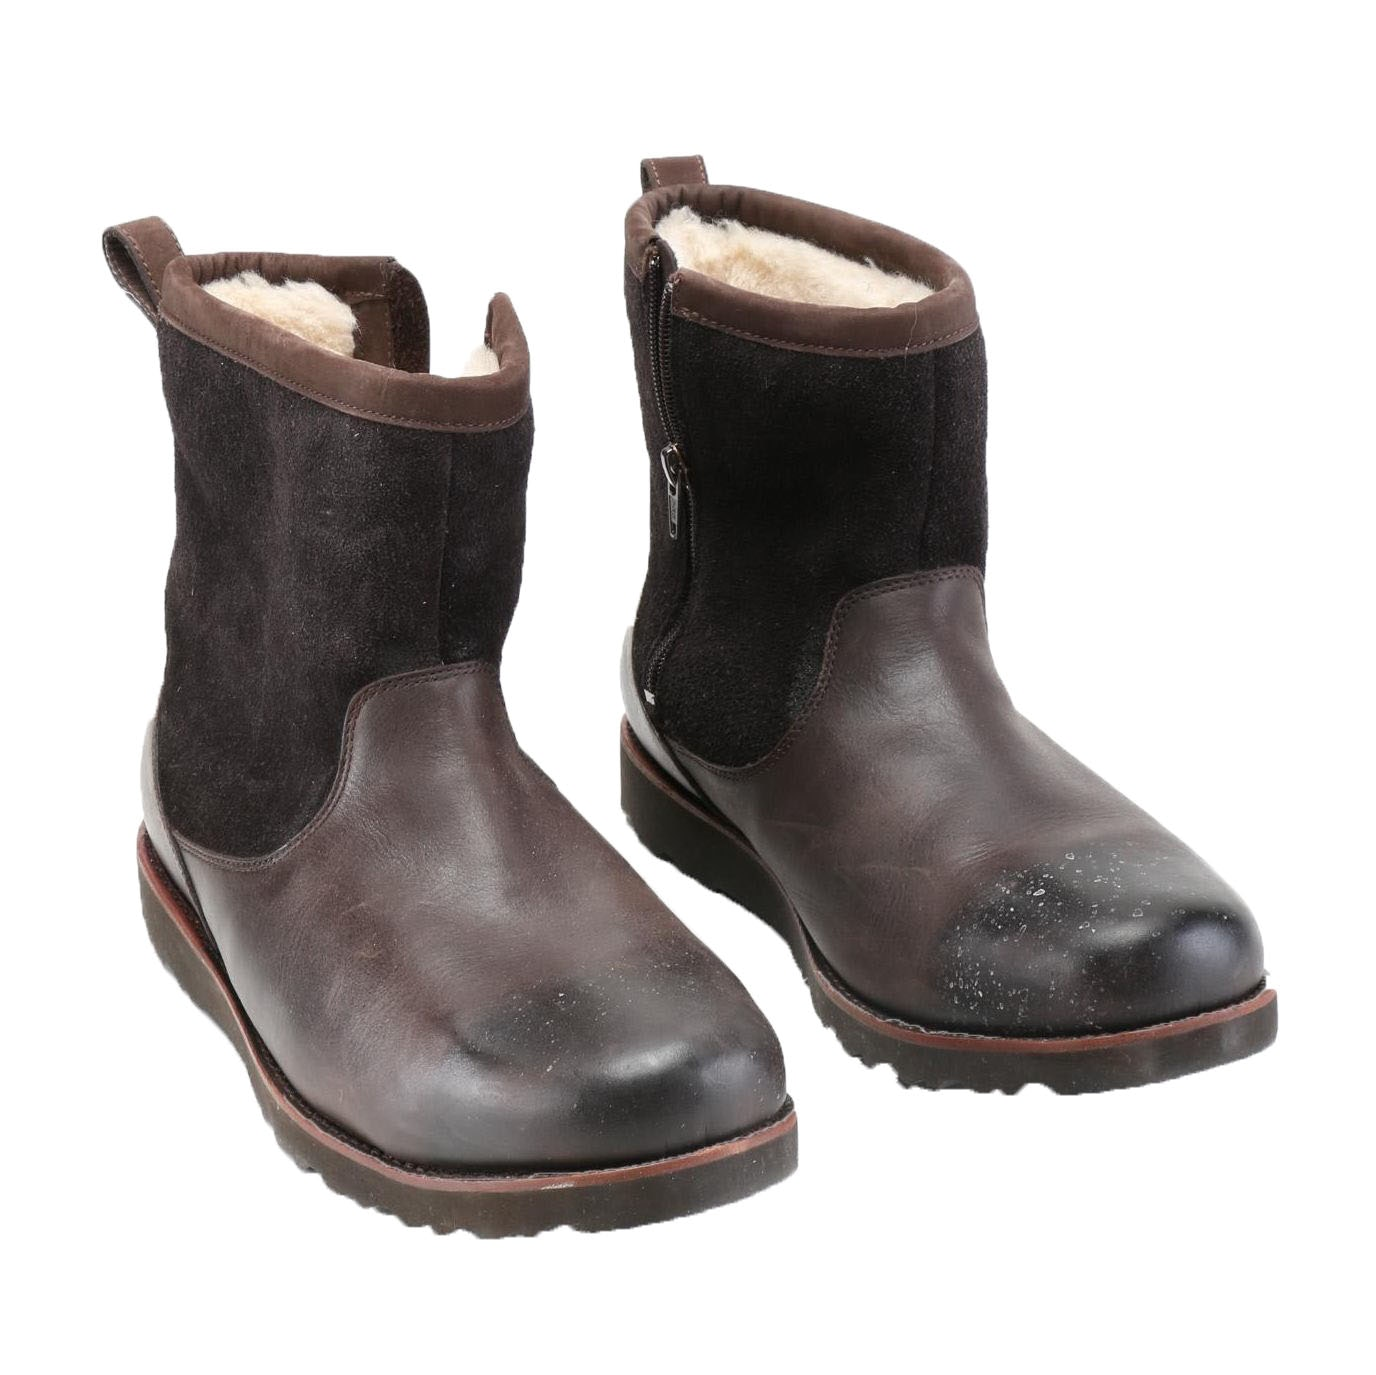 are ugg suede boots waterproof